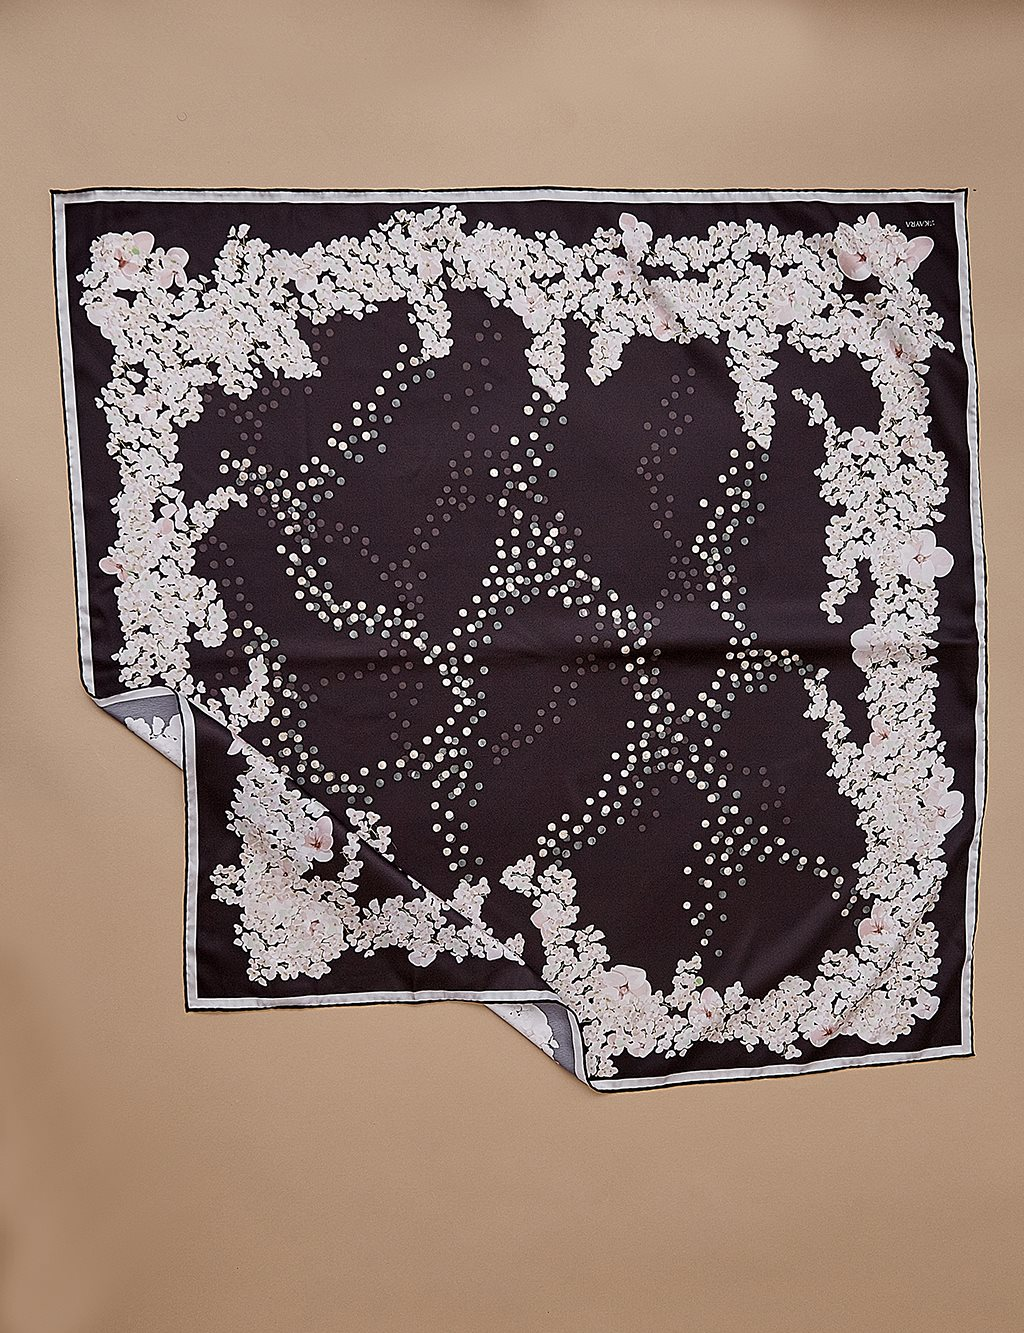 Floral Patterned Pes Scarf A9 ESP80 Black